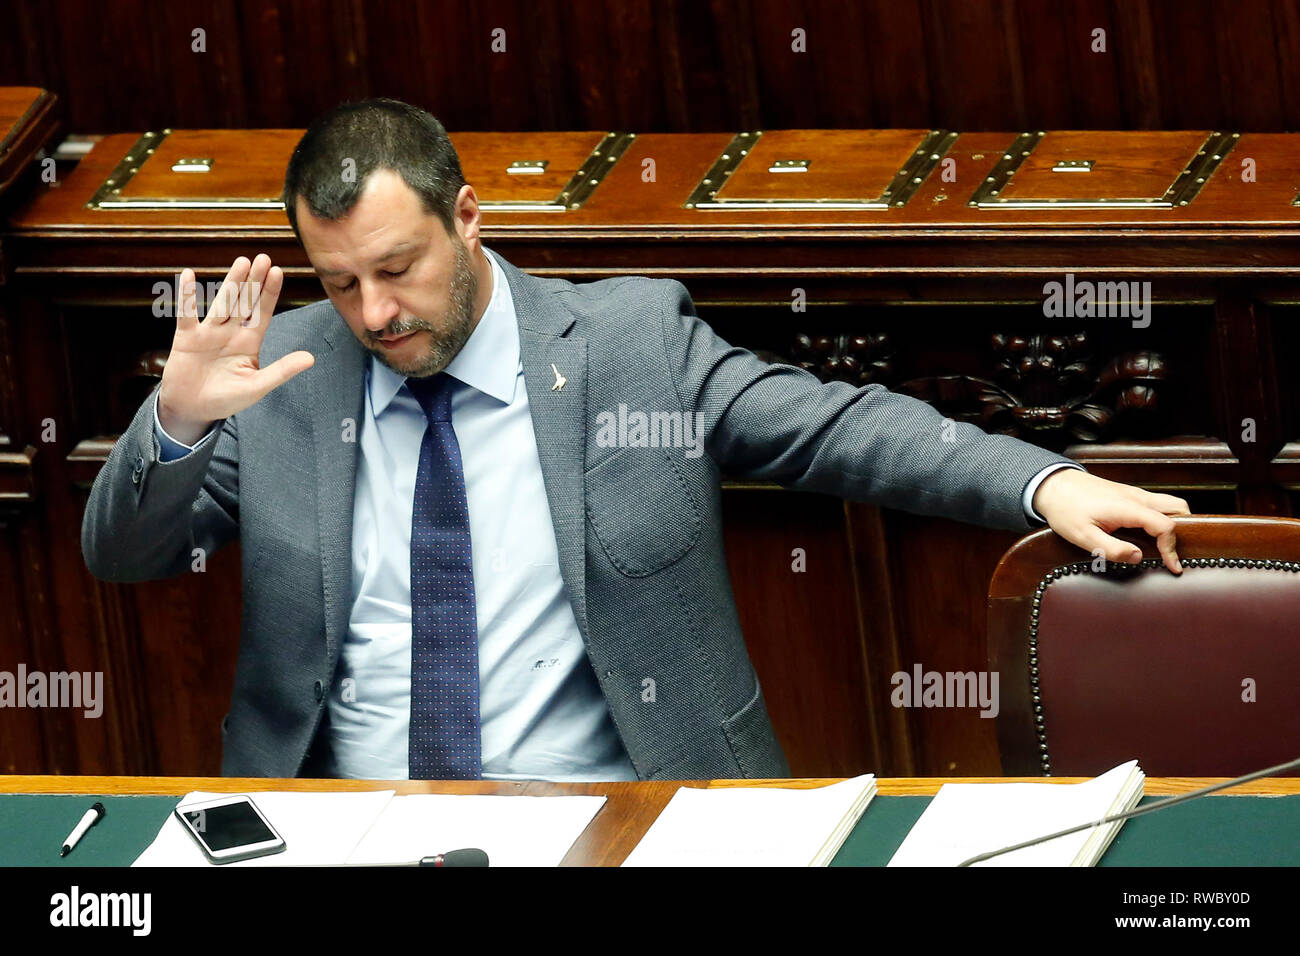 Rome, Italy. 05th Mar, 2019. Matteo Salvini Rome March 5th 2019. Lower Chamber. The minister of Internal Affairs during the discussion about the Chamber of Deputies Safety Decree, a law that will expand the right to legitimate self defence, proposed by his party, Lega Nord. Foto Samantha Zucchi Insidefoto Credit: insidefoto srl/Alamy Live News - Stock Image